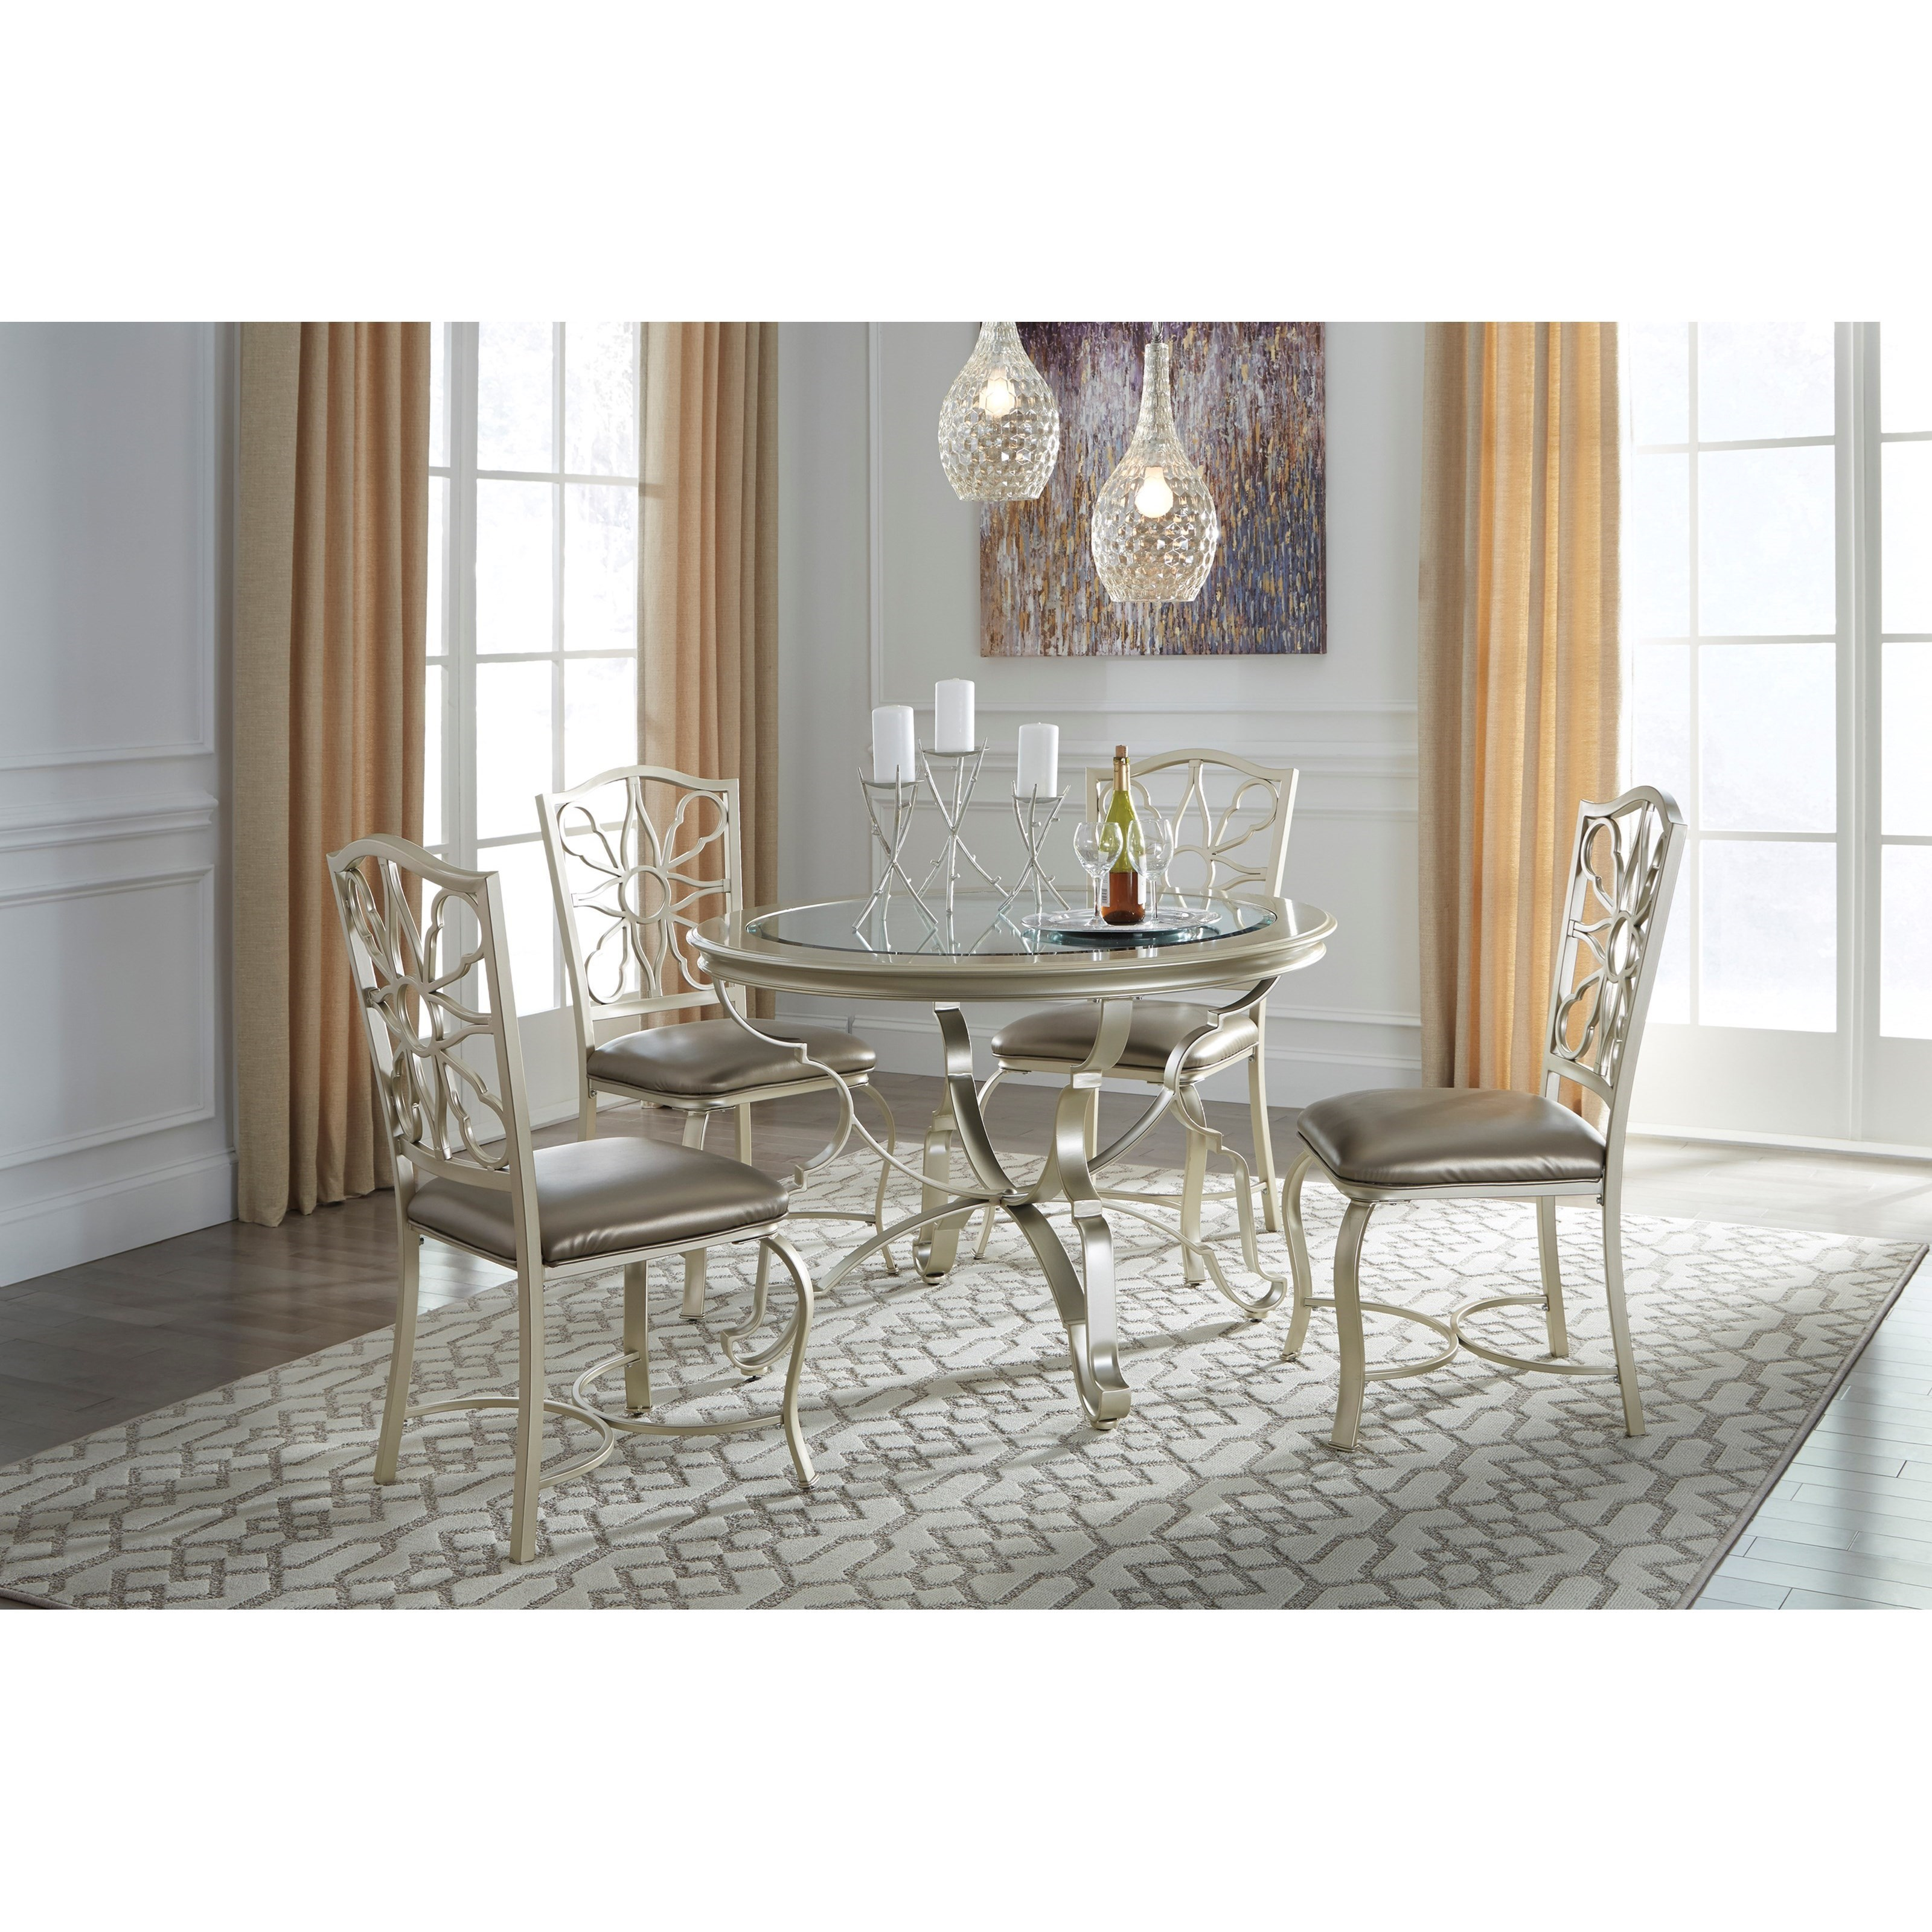 ... Signature Design By Ashley Shollyn5 Piece Dining Table Set ...